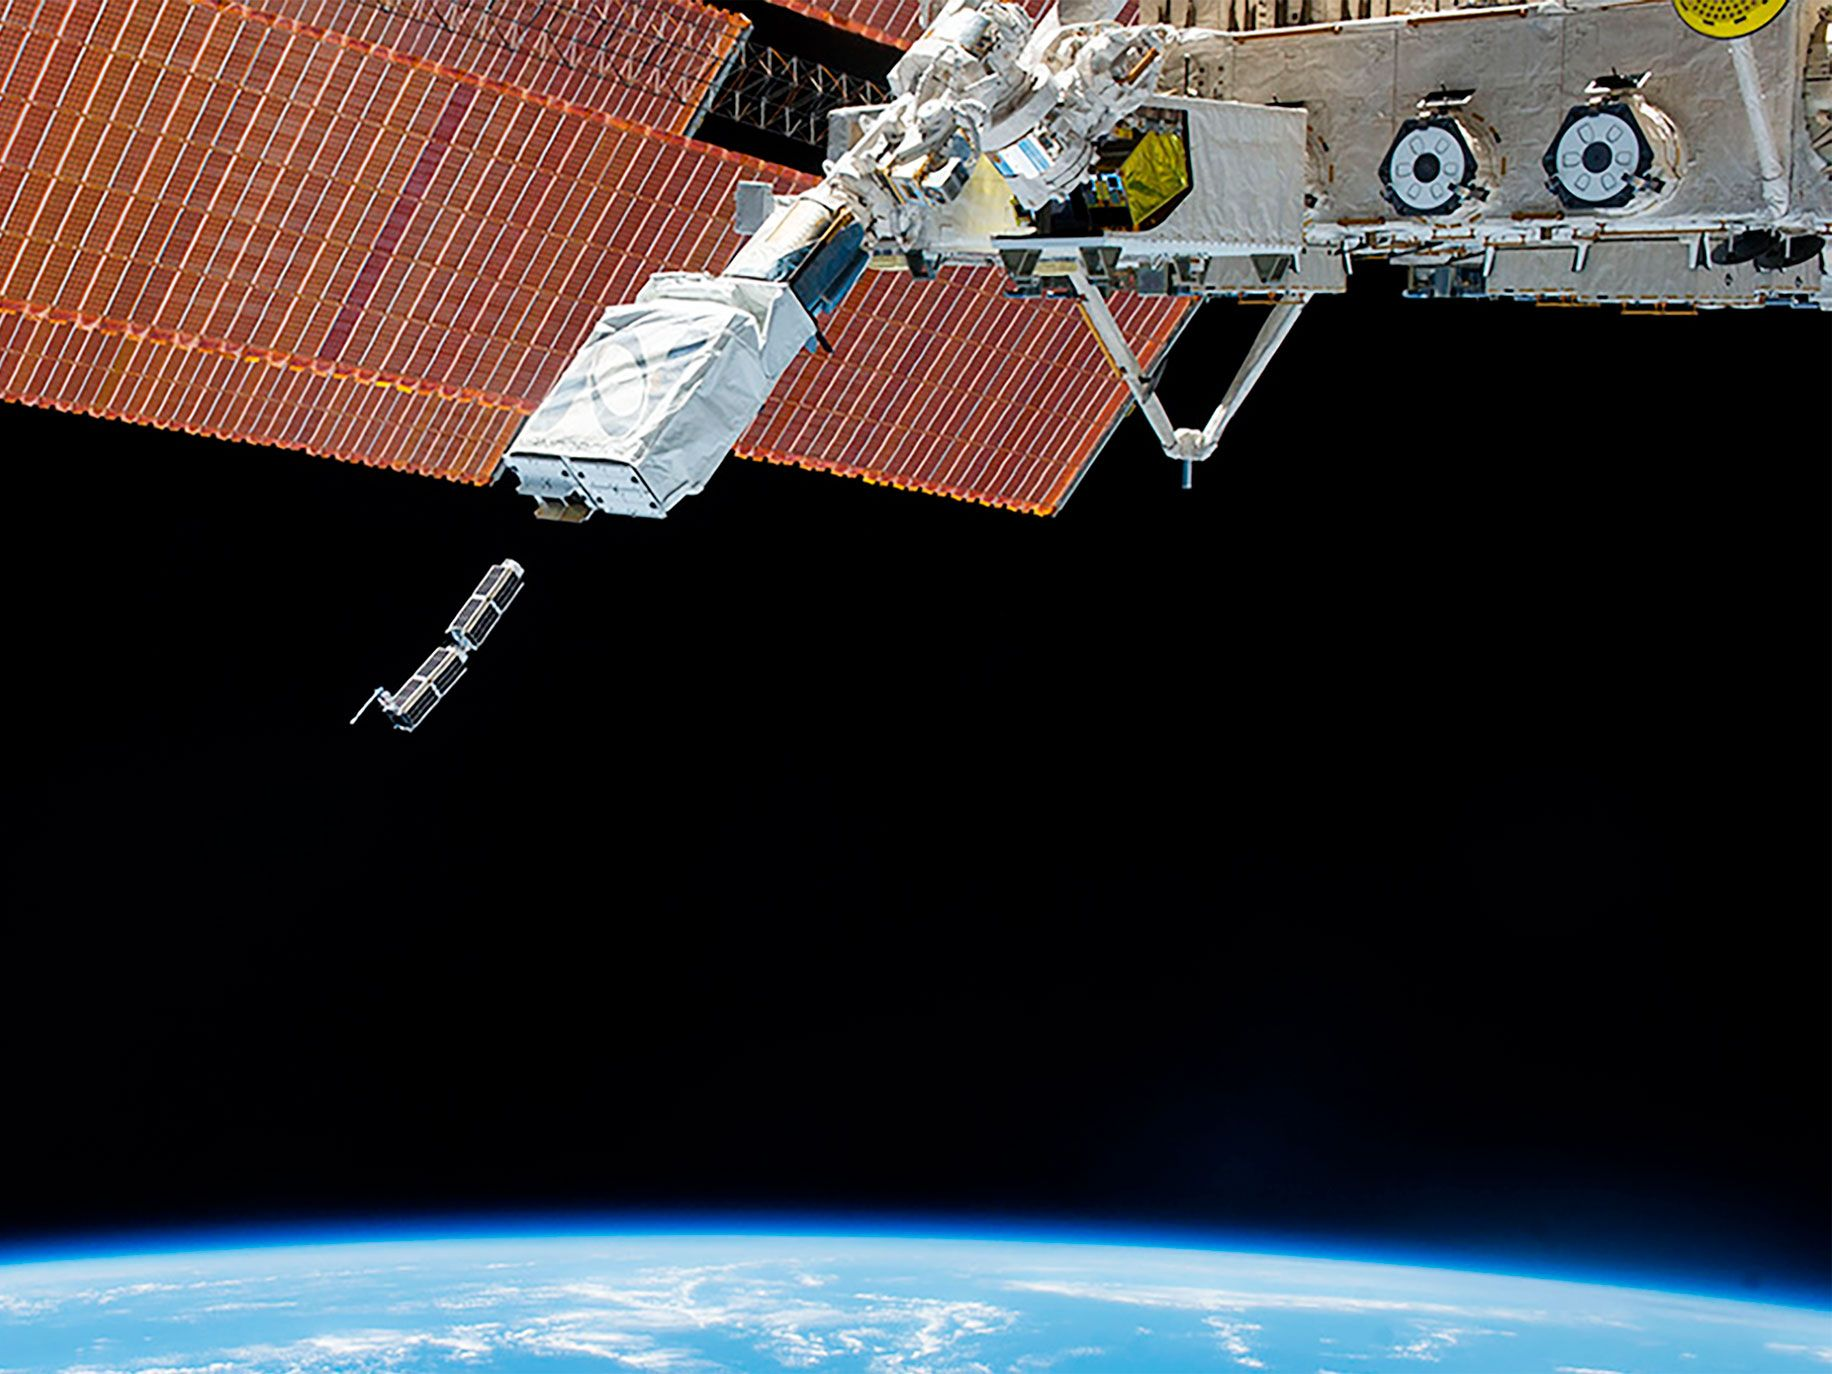 A pair of Planet's Dove satellites releasing from the International Space Station. The company began using the ISS for deployment in January 2014.